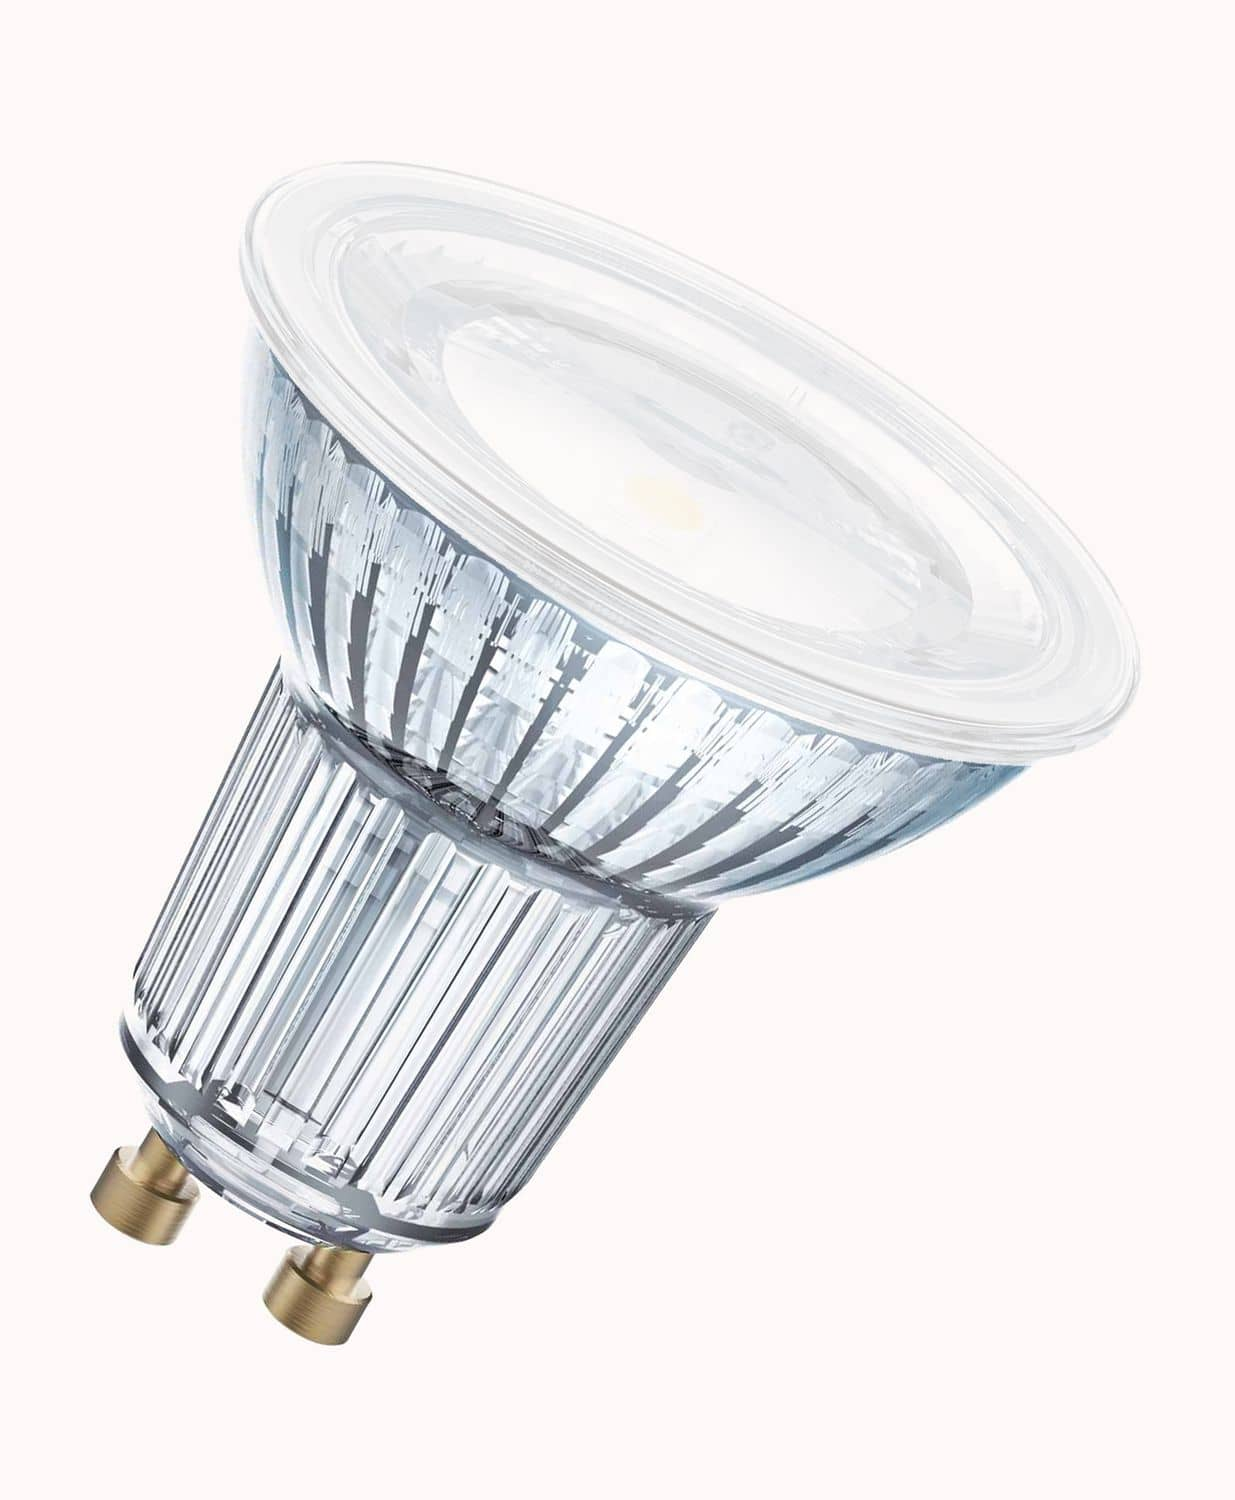 Osram Superstar Gu10 Par16 Led Strahler 8w Dimmbar 575lm 120 2700k Warmweiss